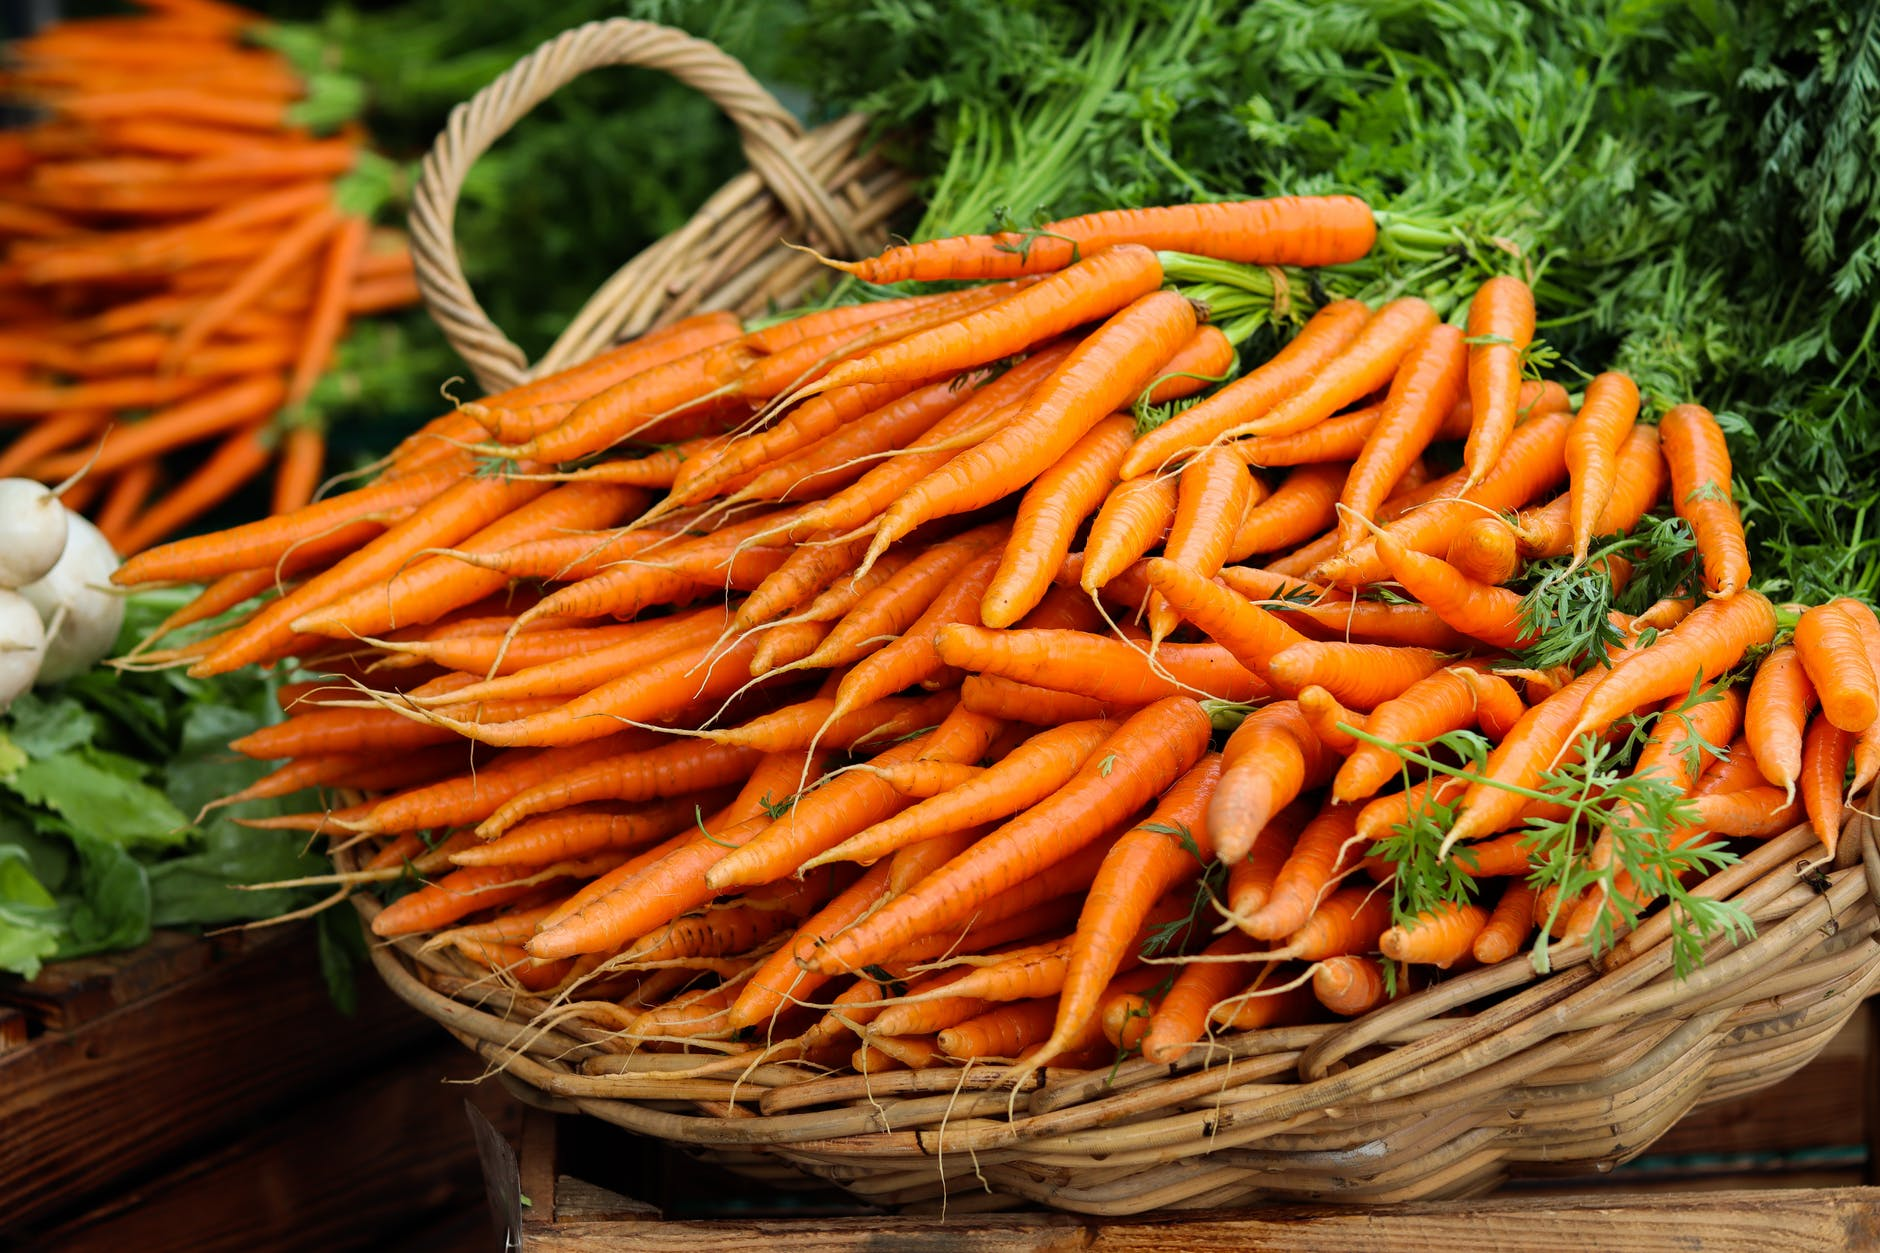 Top 10 Nutritional And Health Benefits Of Carrots